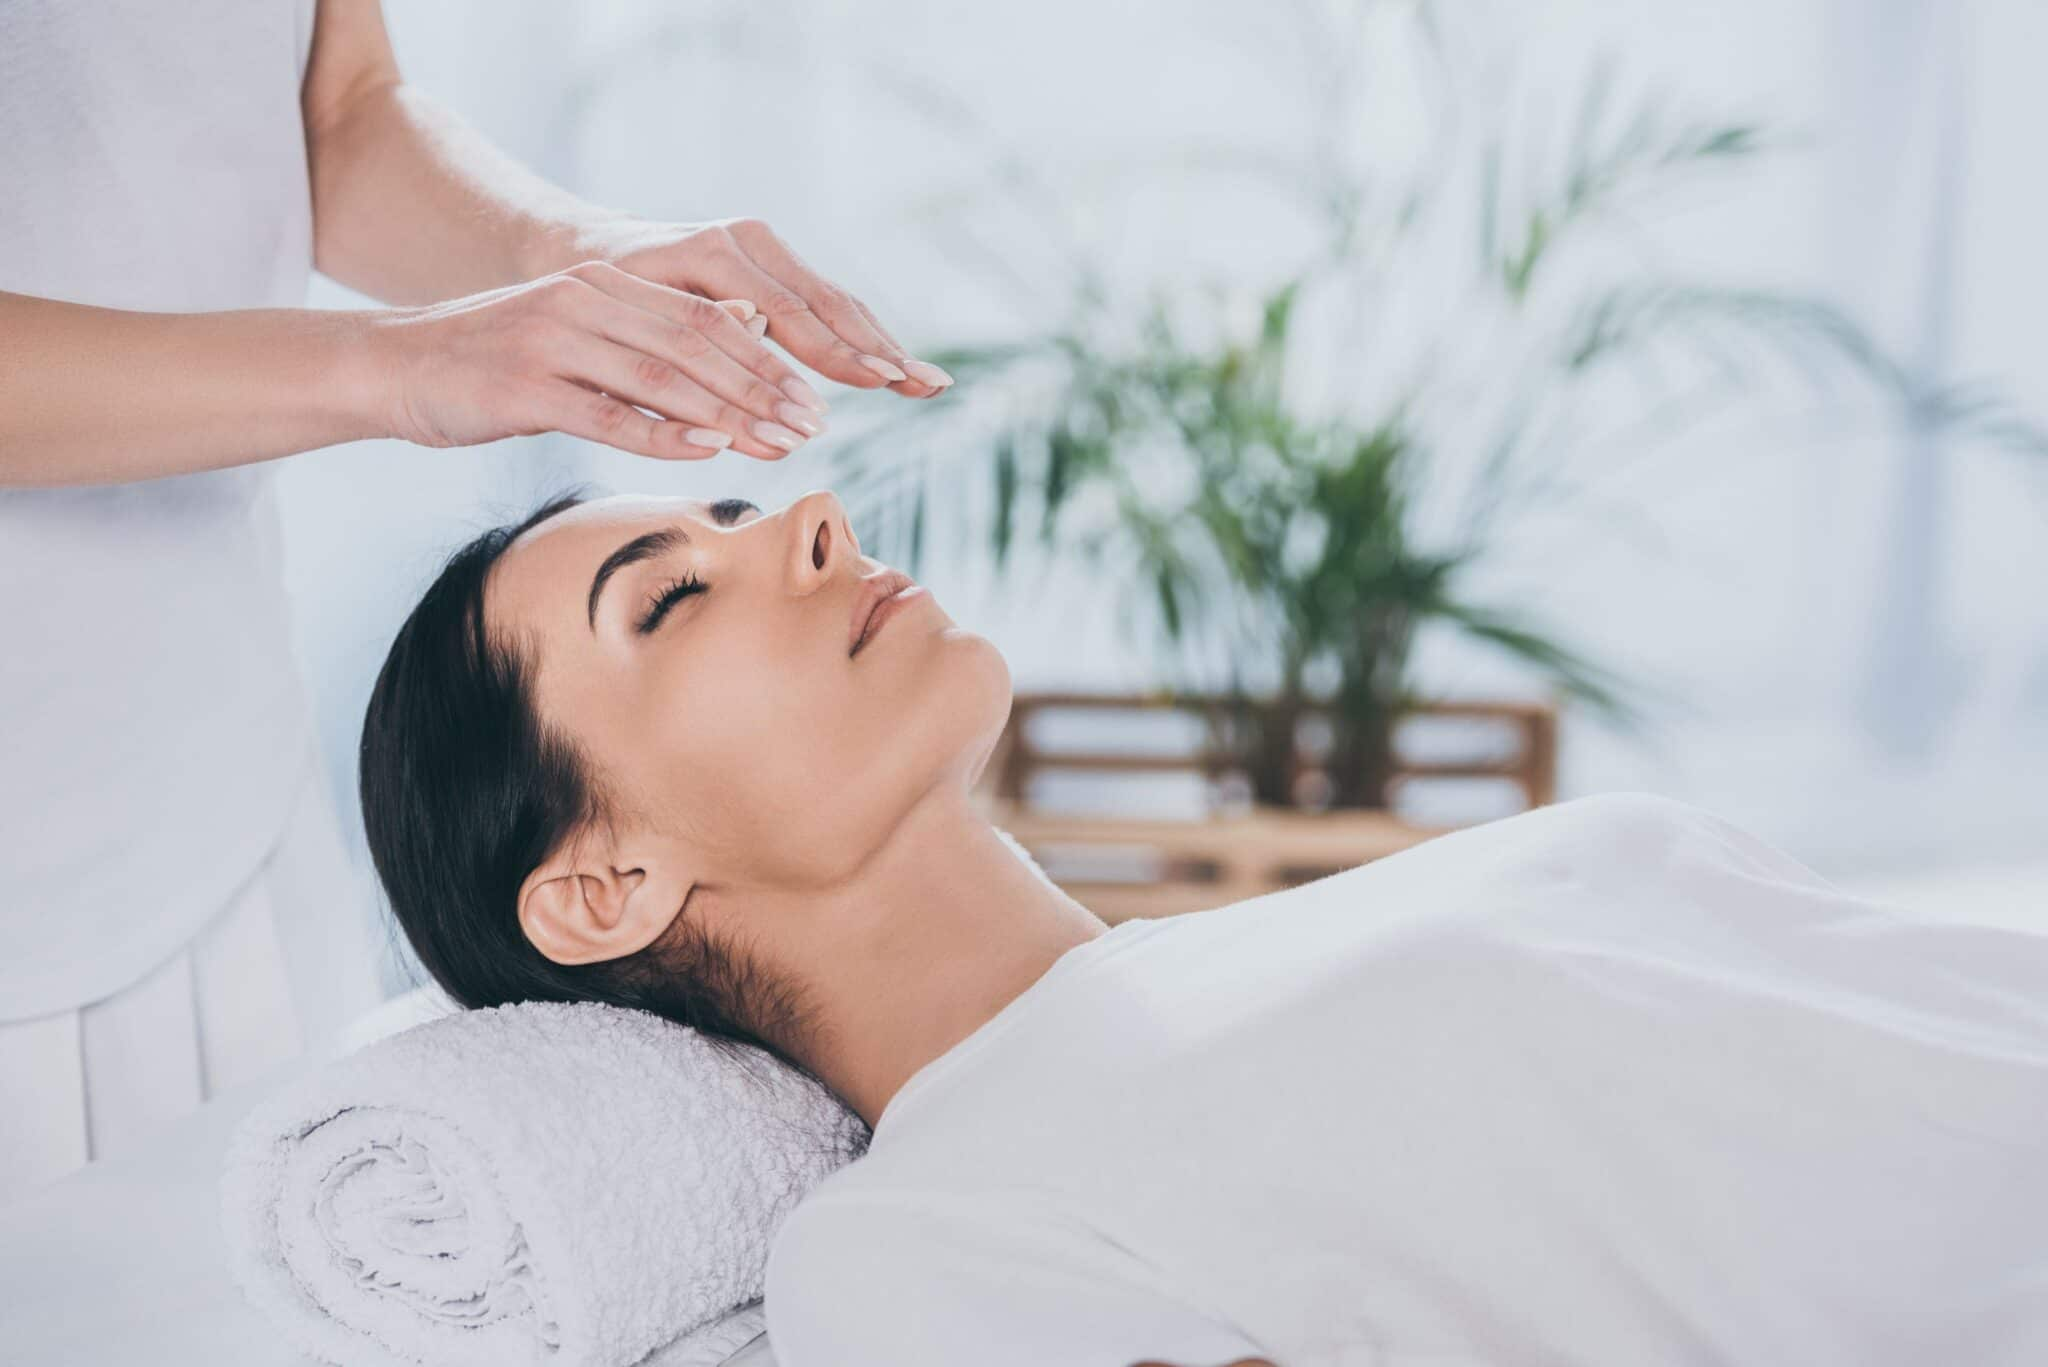 What Is Reiki And Can It Help Relieve Stress